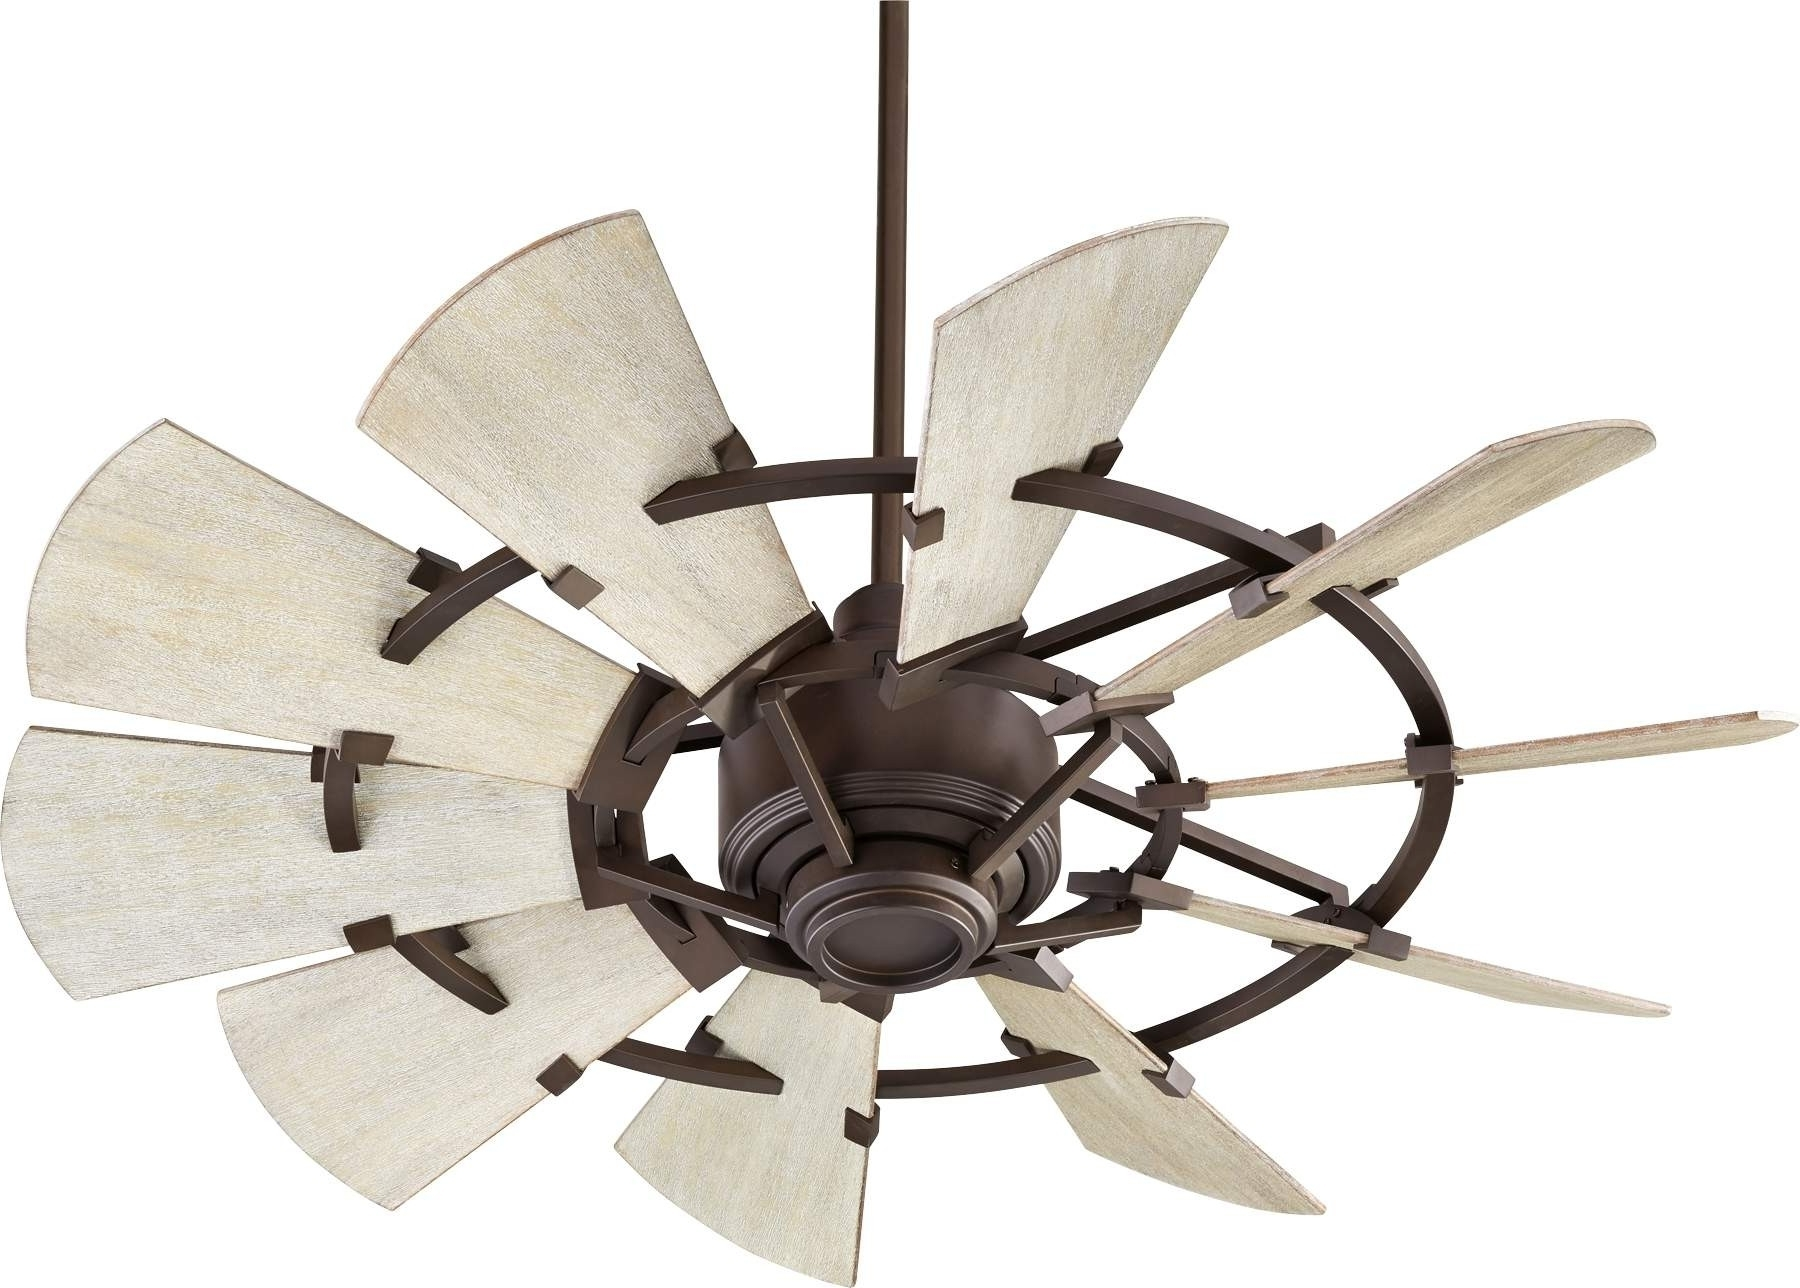 Outdoor Windmill Ceiling Fans With Light Within Trendy Quorum Windmill Ceiling Fan Model 194410 86 In Oiled Bronze (View 5 of 20)